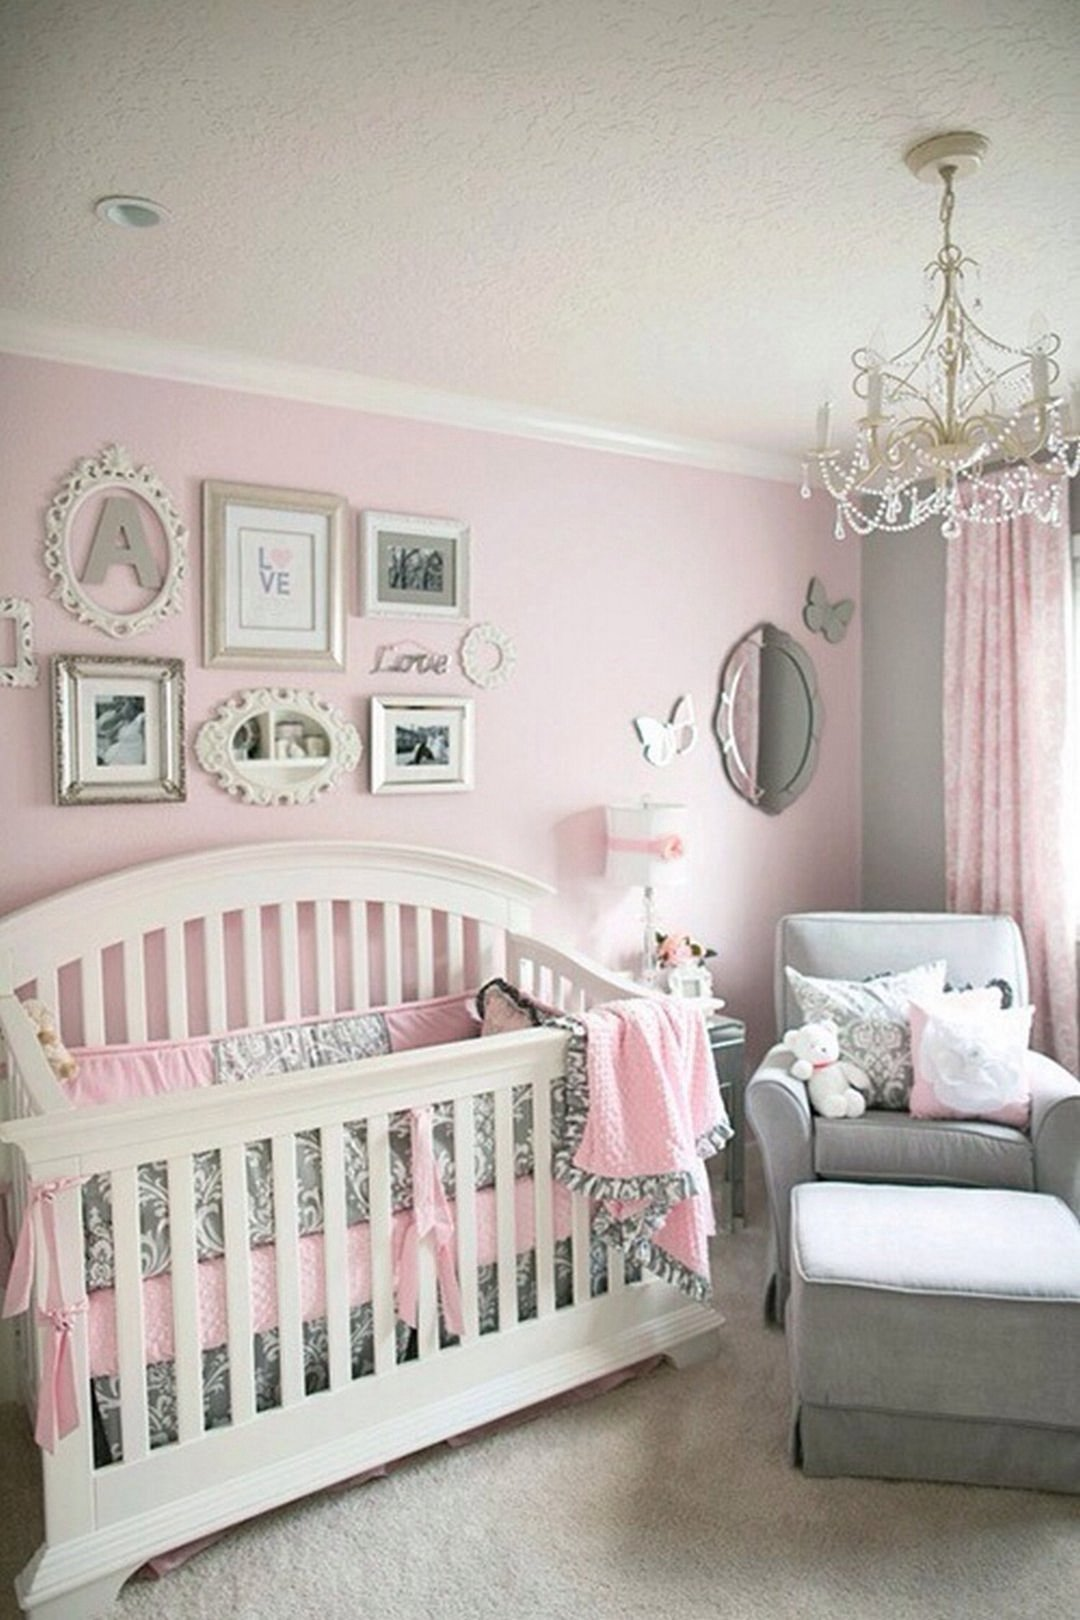 10 Spectacular Cute Baby Girl Picture Ideas 6 actionable tips on baby girl nursery nursery babies and girls 5 2021